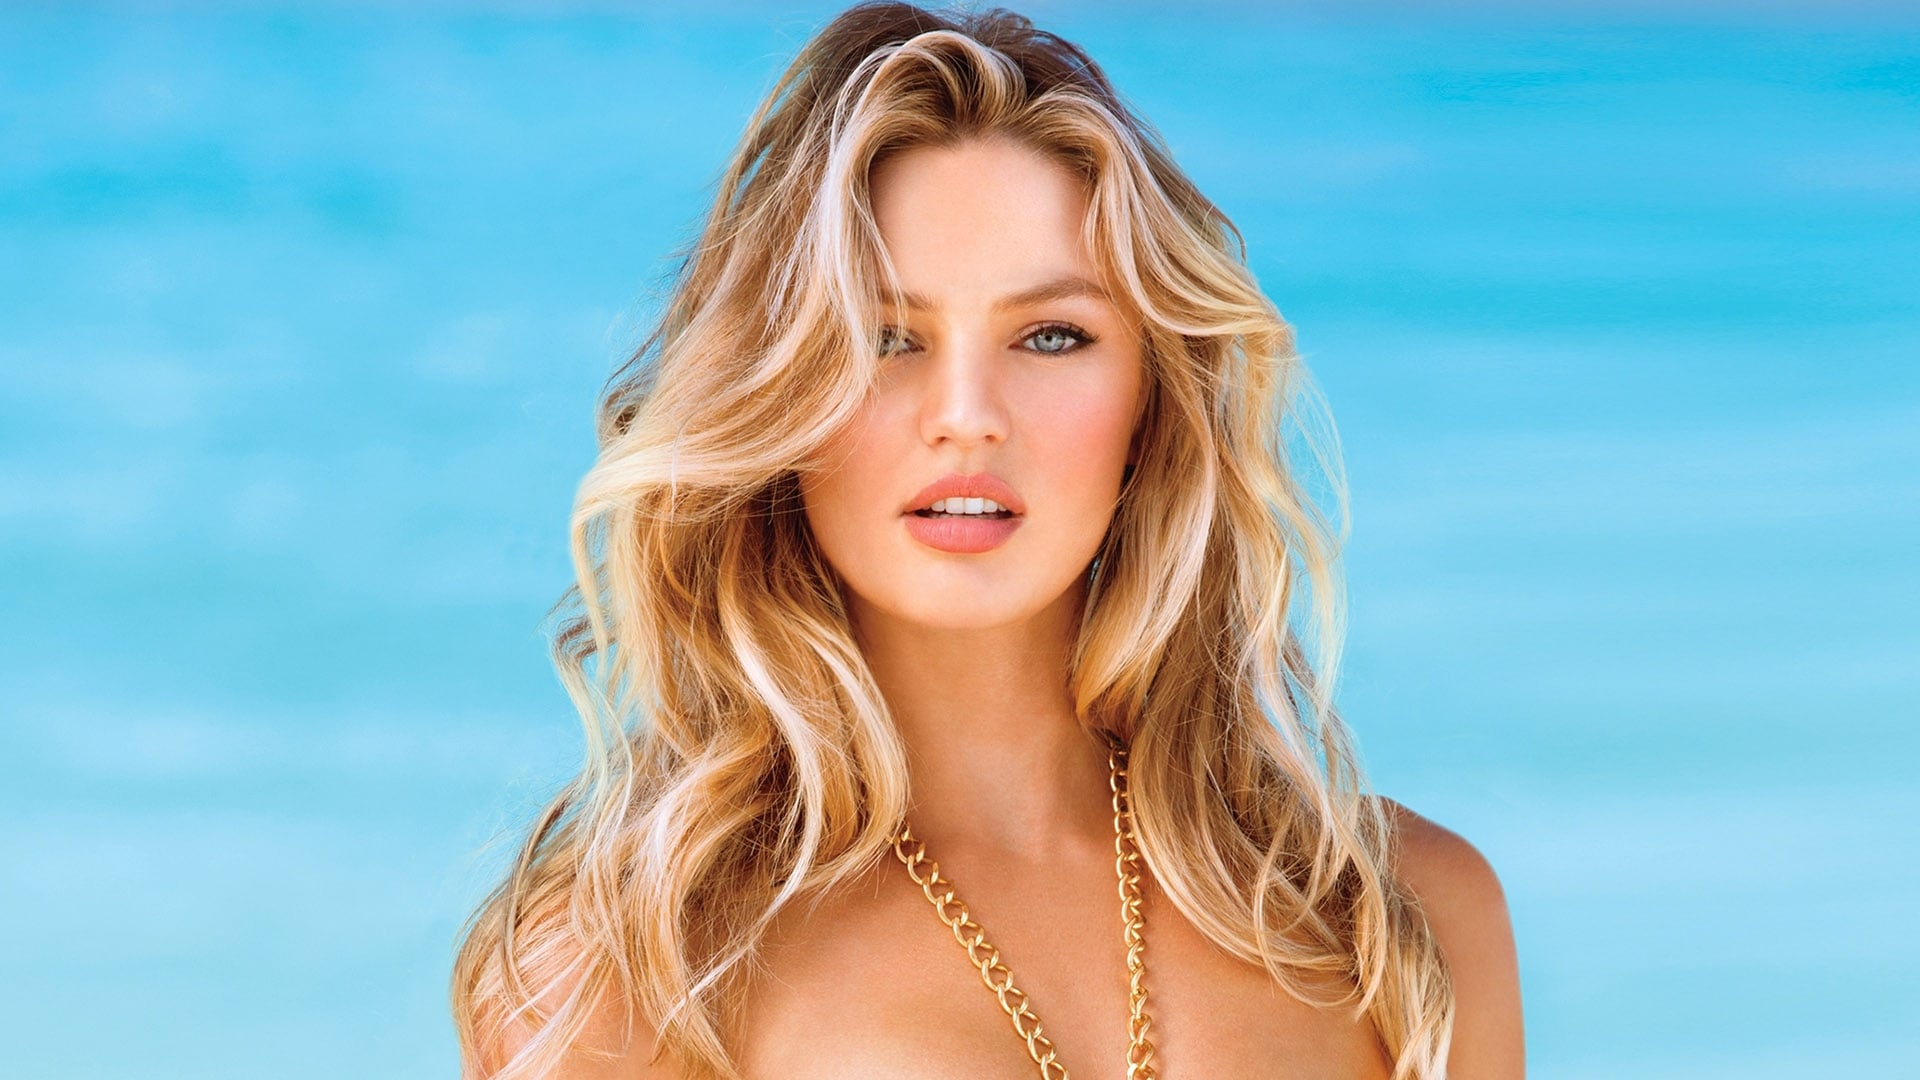 Candice Swanepoel Wallpapers Celeb Lives